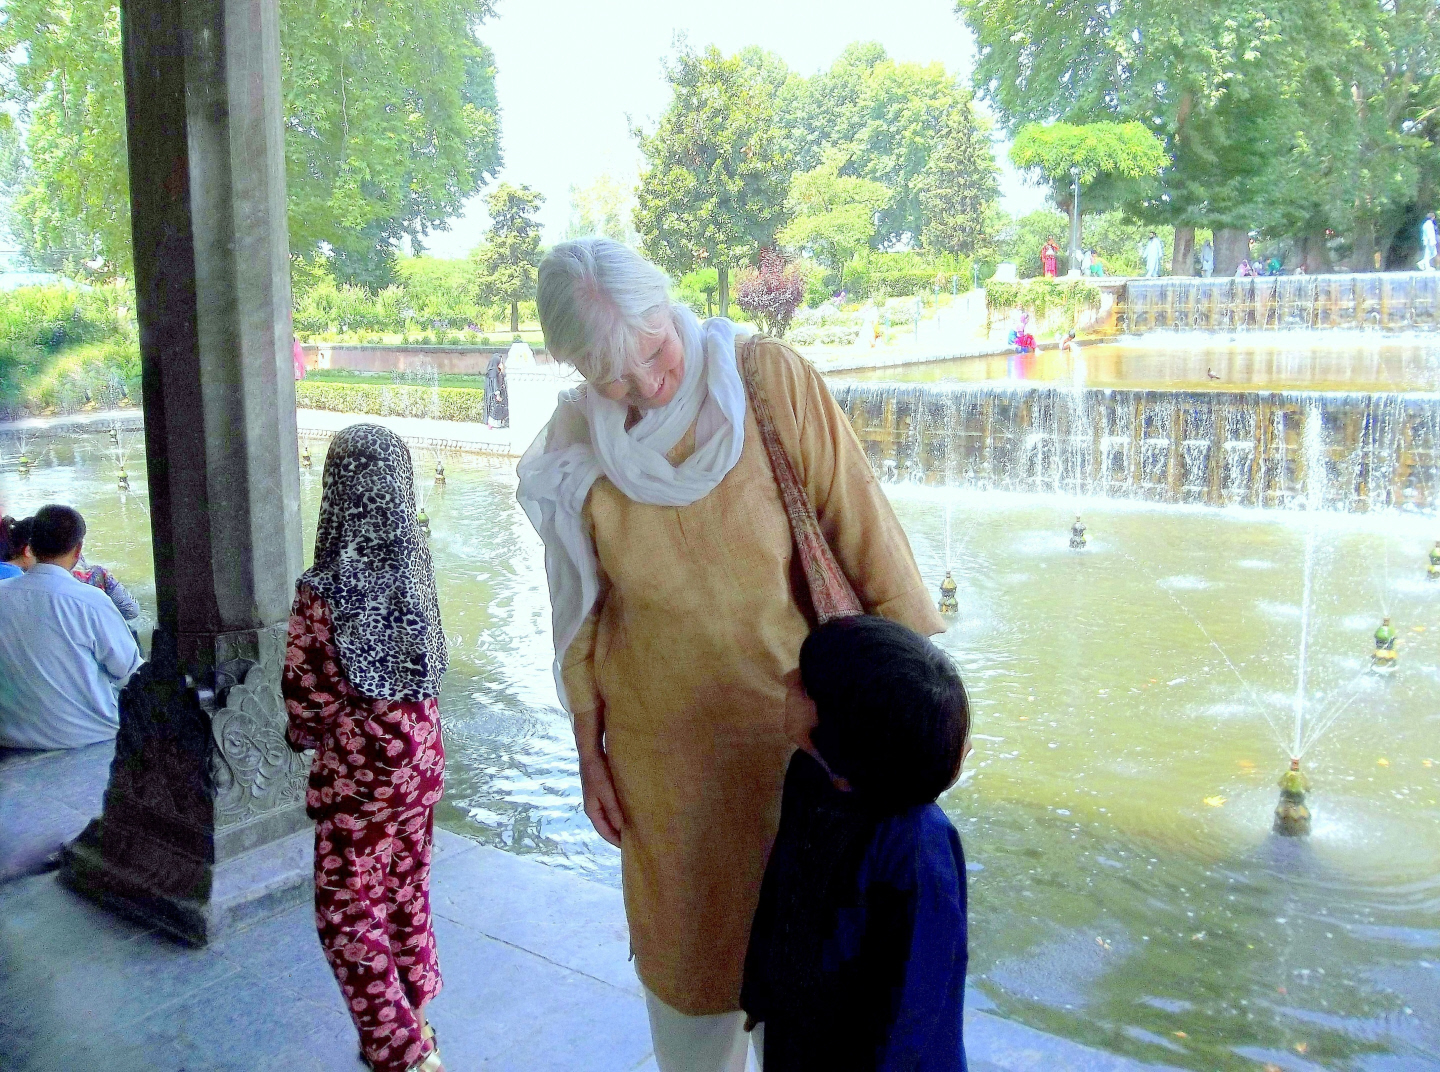 Children are the Most Curious - The Most Wonderful Asset for Learning & an Open Mind - Shalimar Gardens, Srinagar- Kashmir